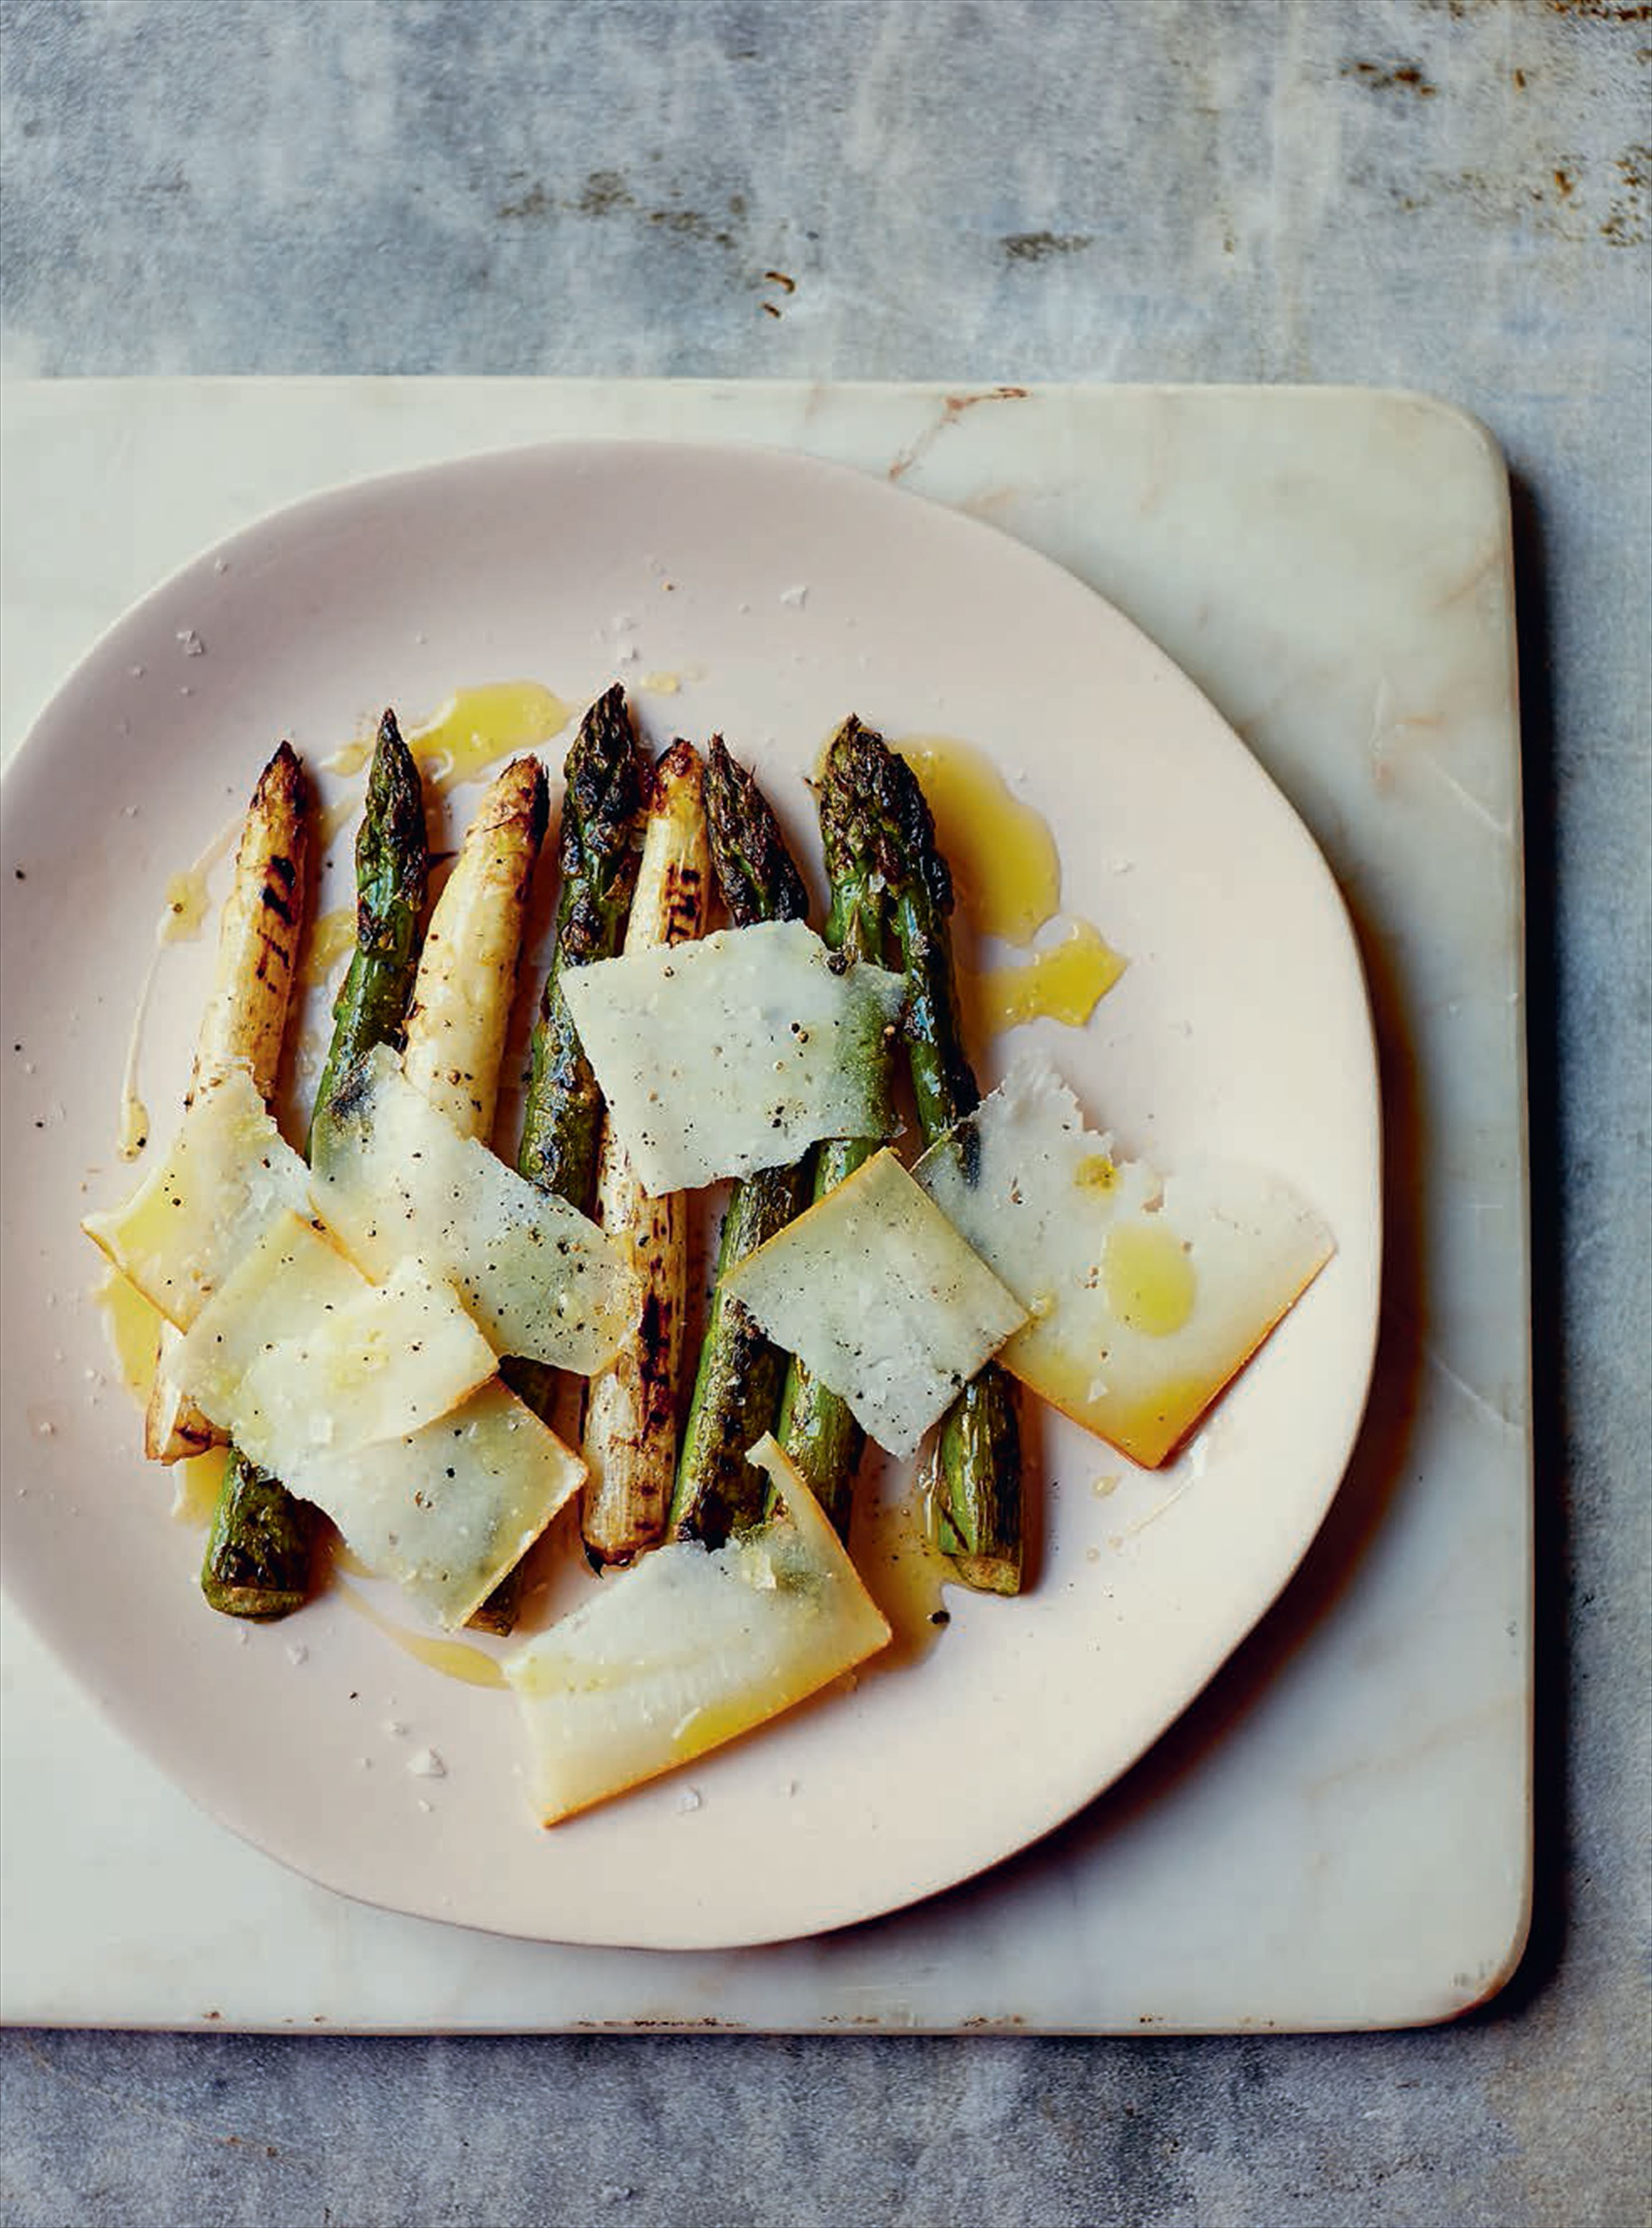 Grilled green & white asparagus with Idiazábal smoked cheese